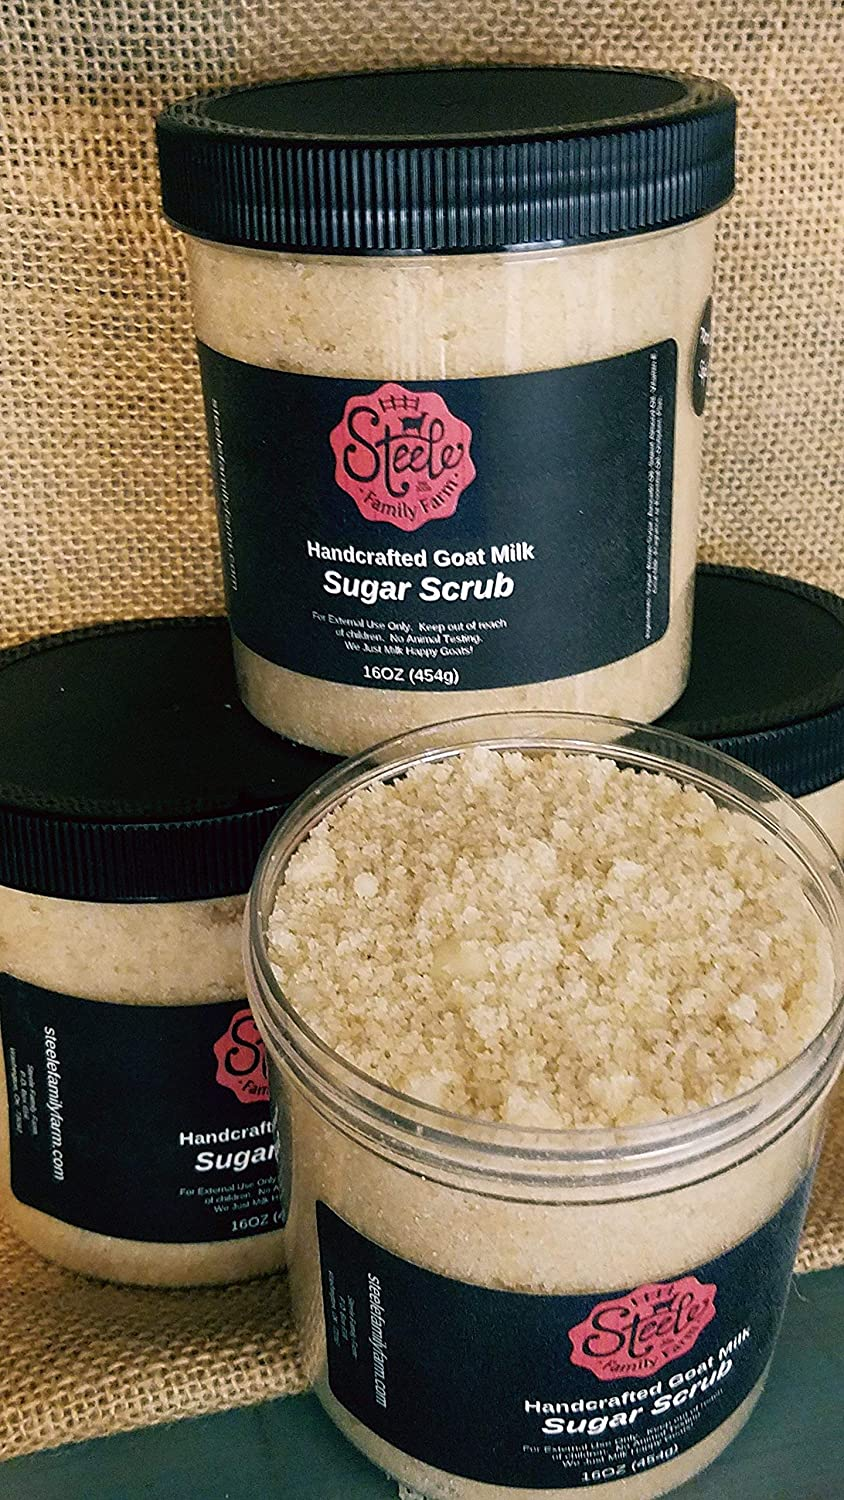 Handcrafted Goat Milk Sugar Scrub - 16oz